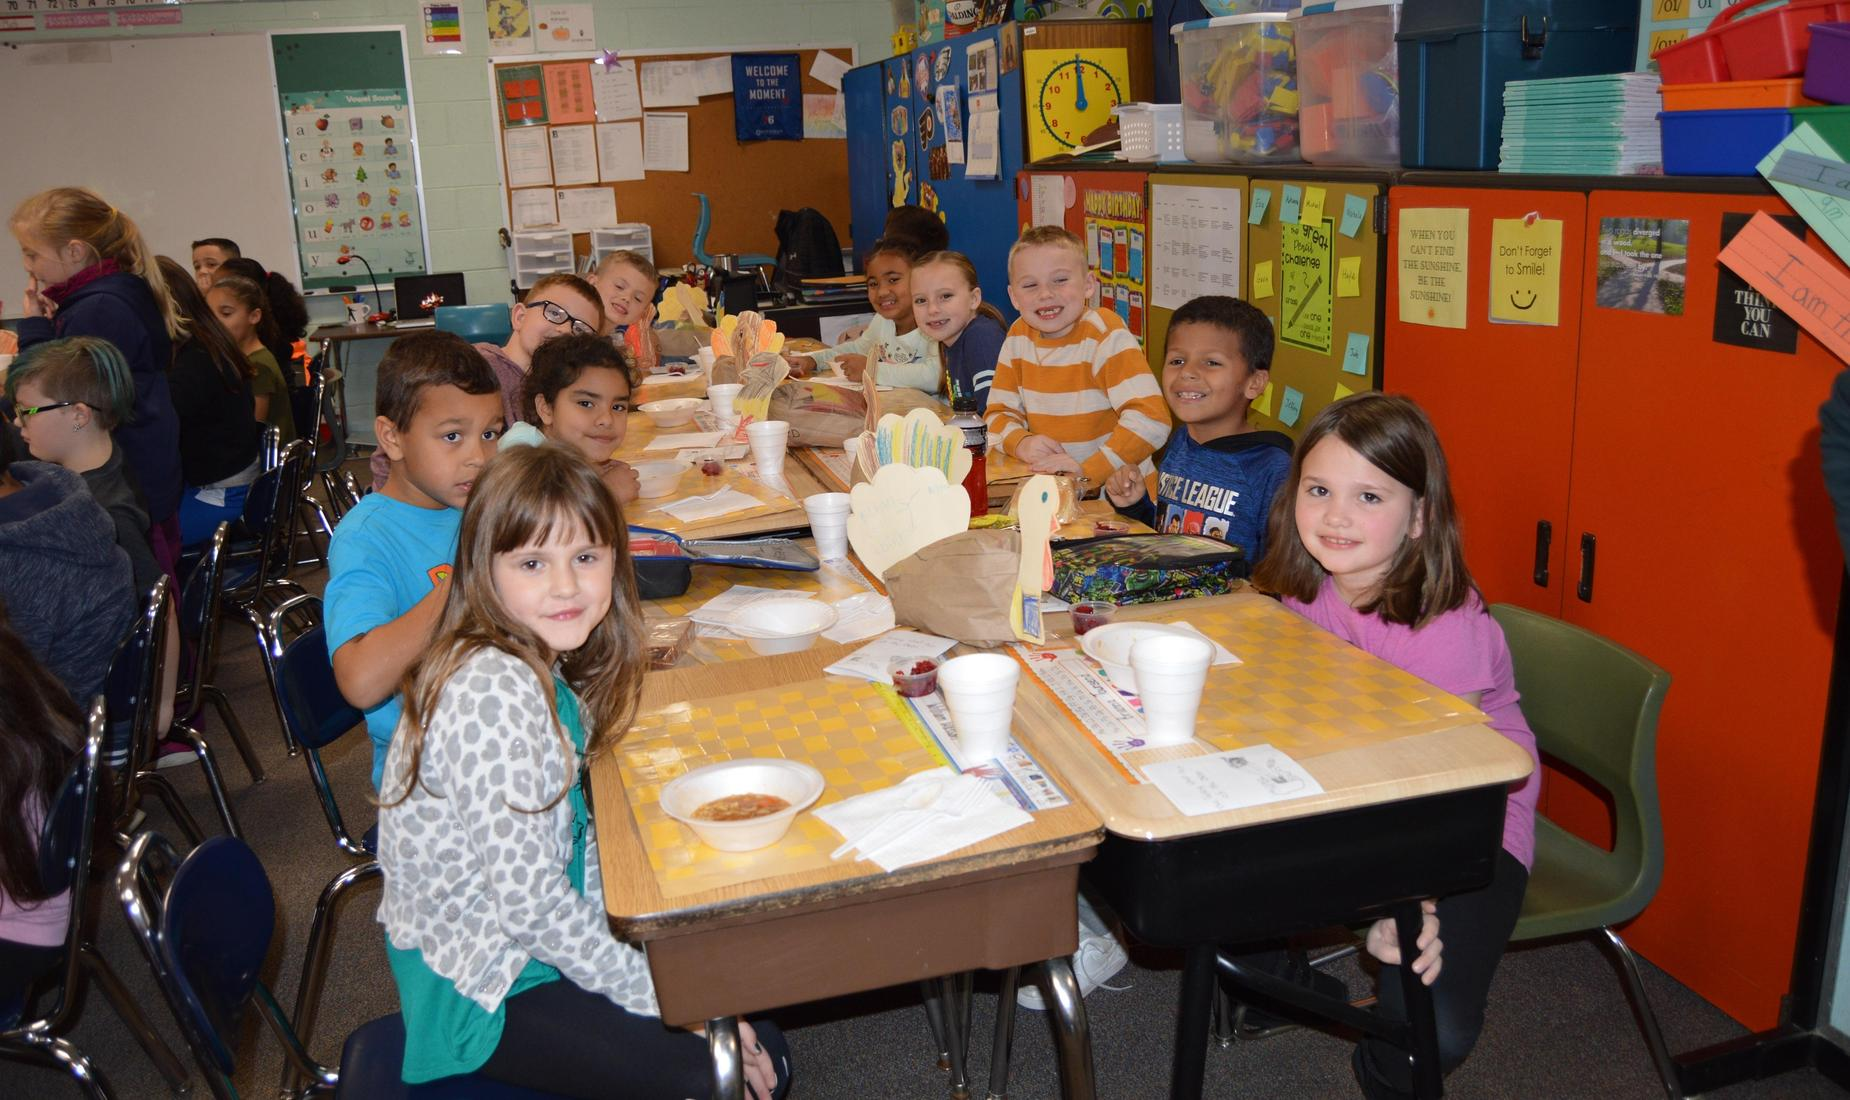 Boys and girls in 2nd grade sitting at their desks waiting for their Thanksgiving Feast.